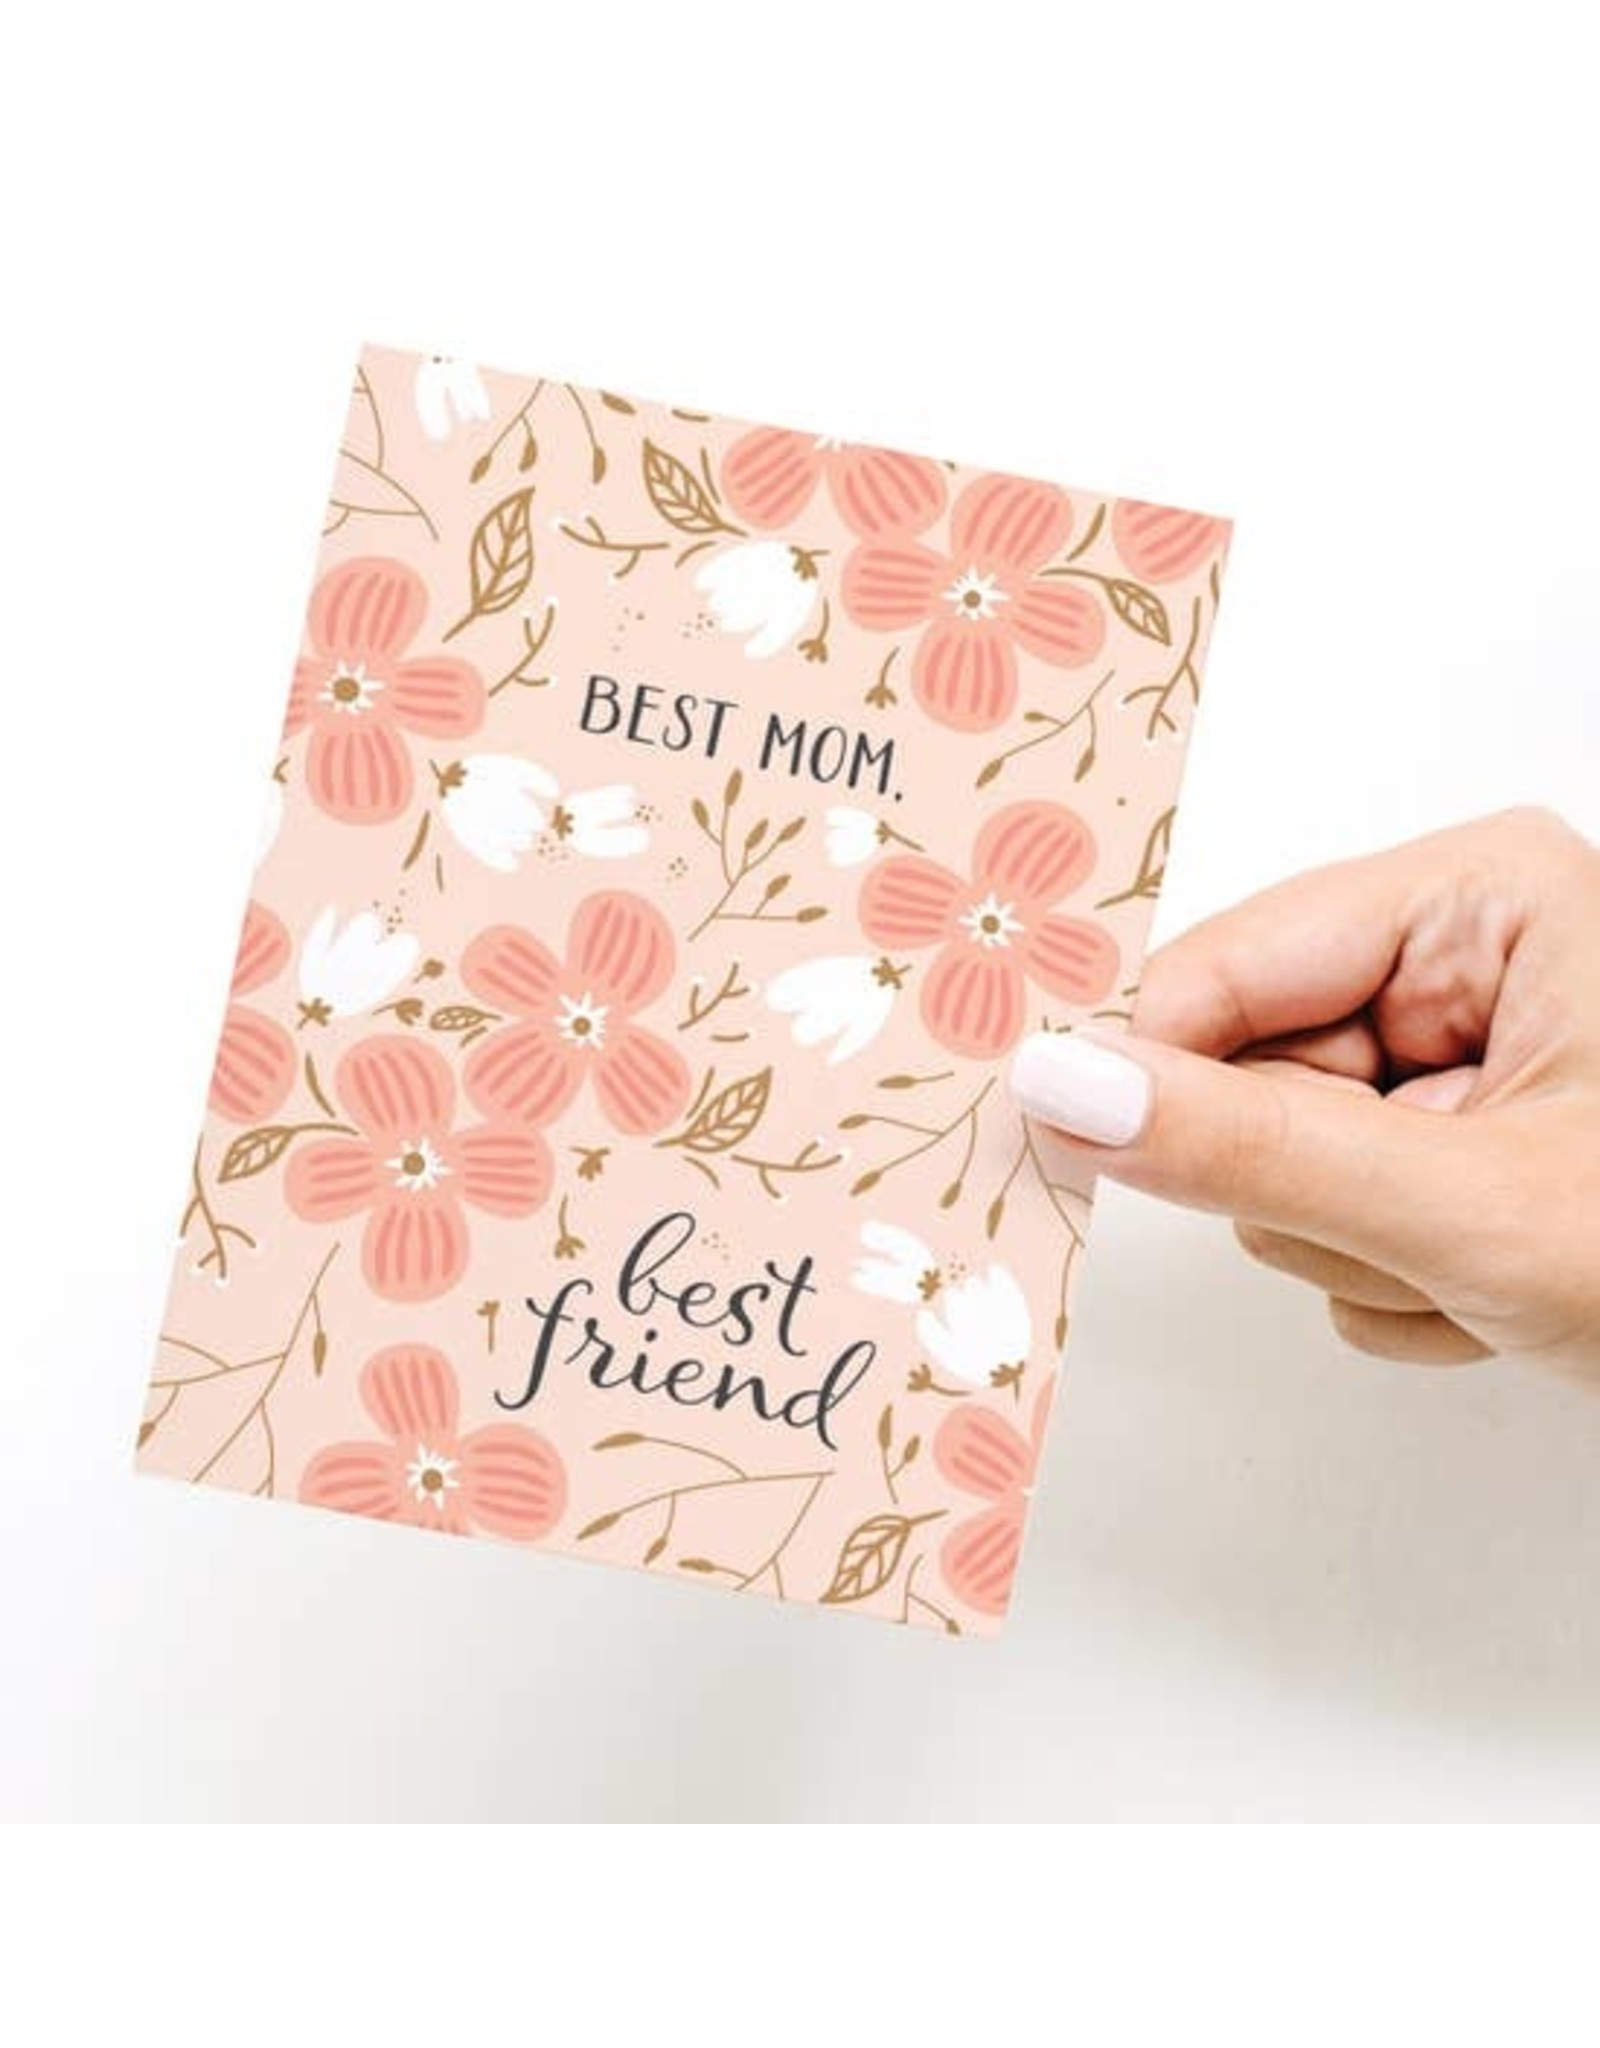 Onderkast Studio Onderkast - Best Mom Best Friend Greeting Card